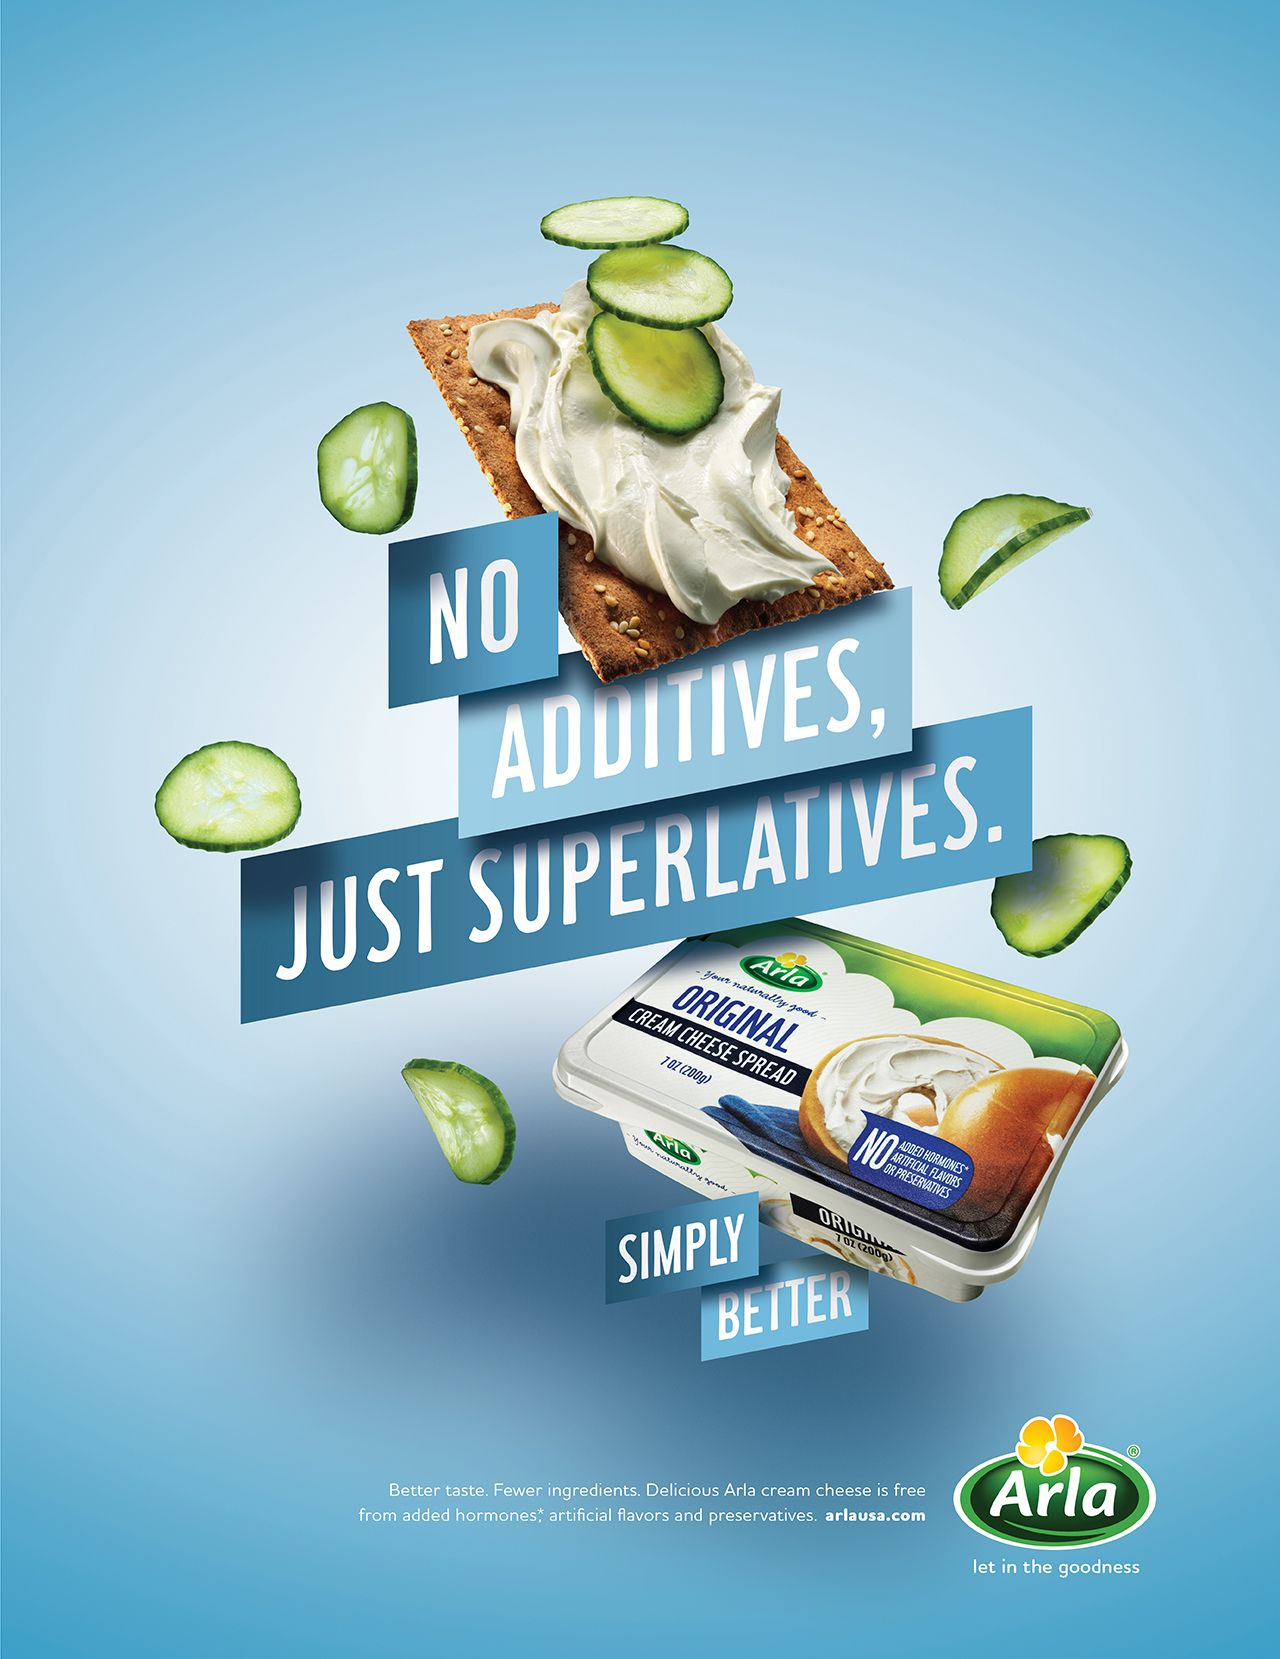 Print, poster and digital campaign introducing Arla cream ...